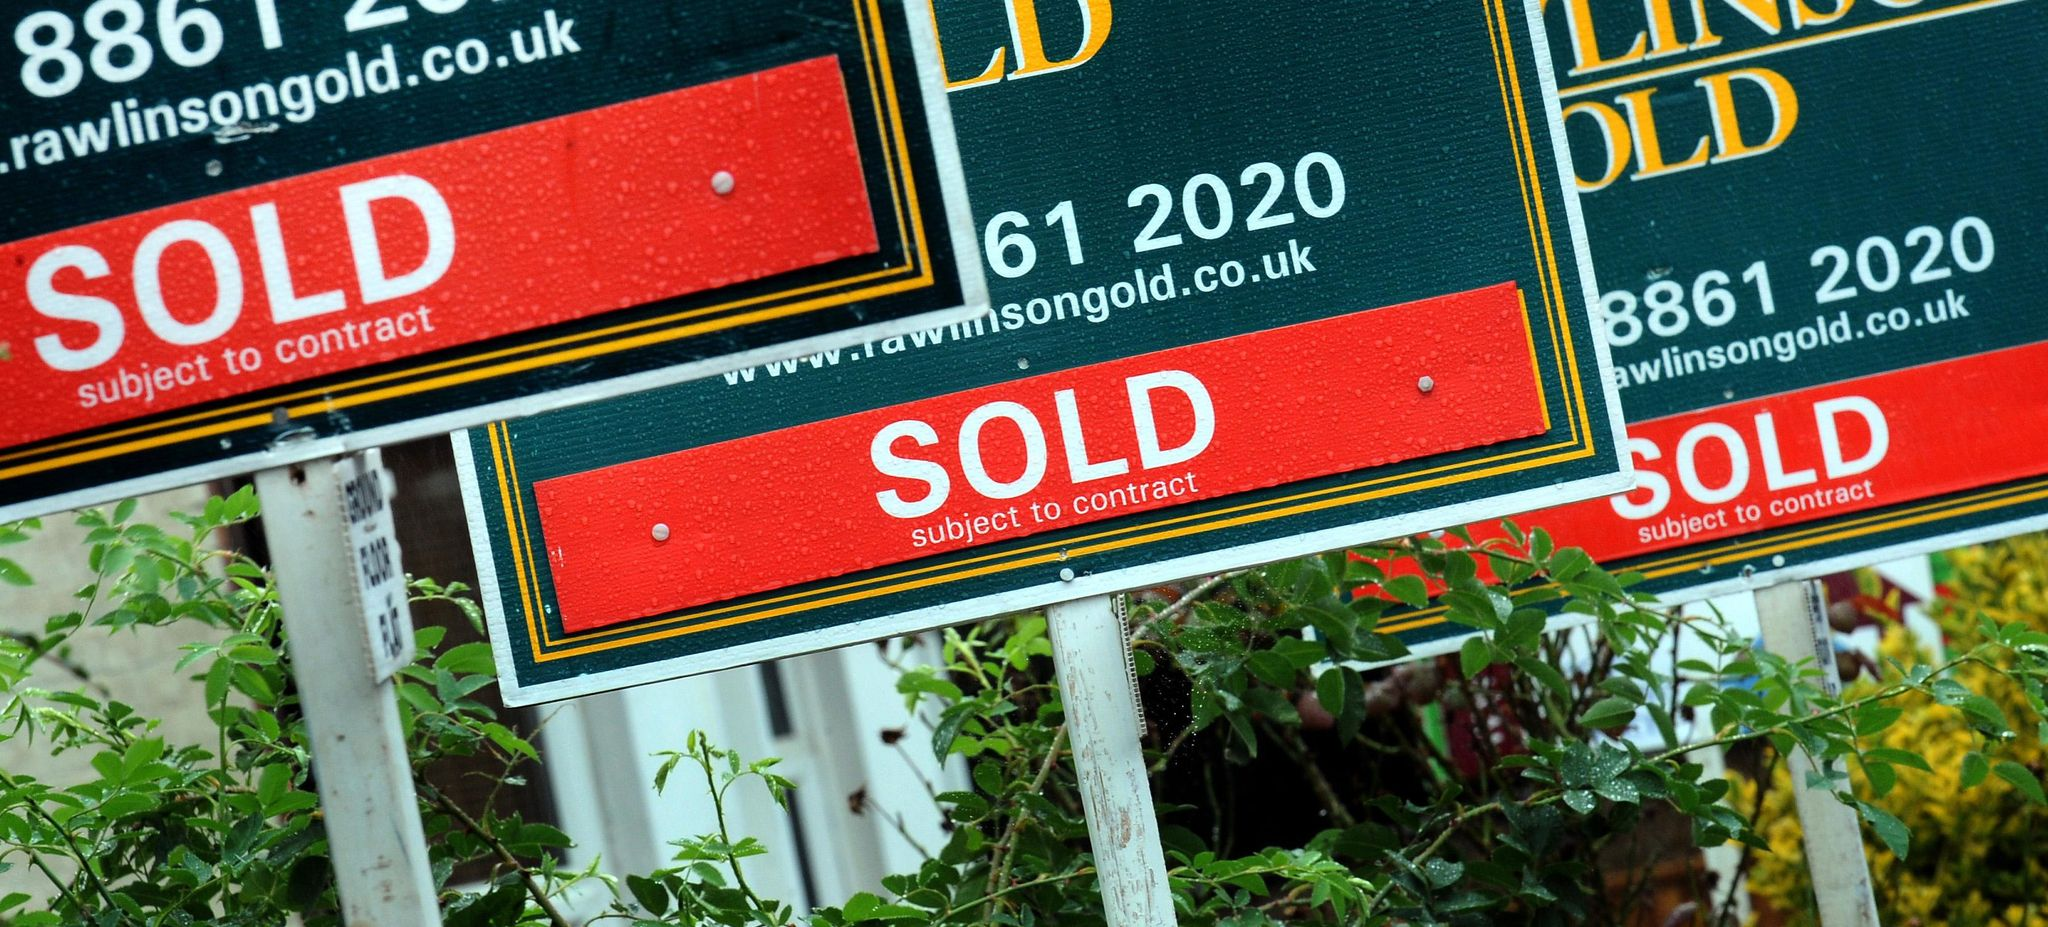 House sales get 'Boris Bounce' with 15% rise since general election